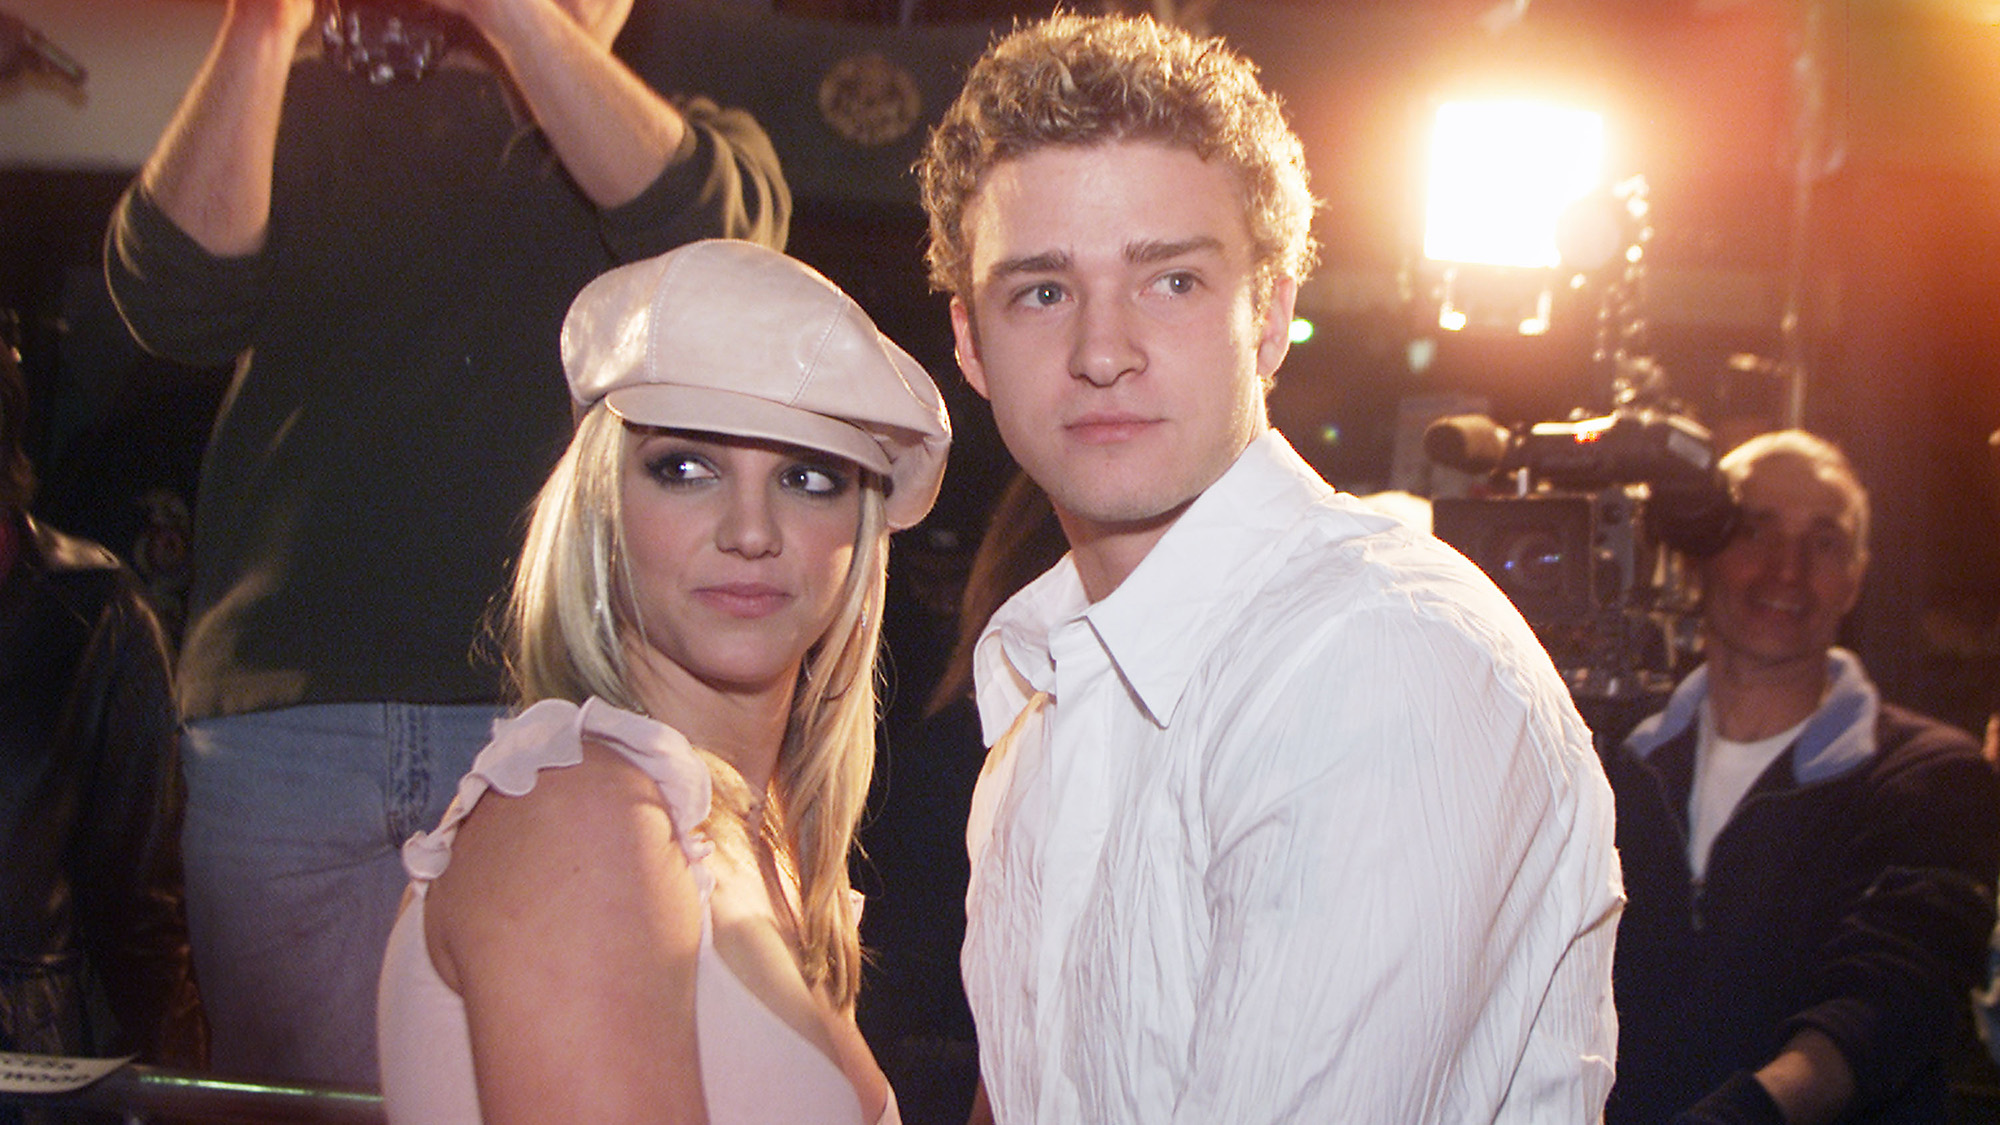 Justin Timberlake: 'After what we saw today, we should all be supporting Britney at this time'